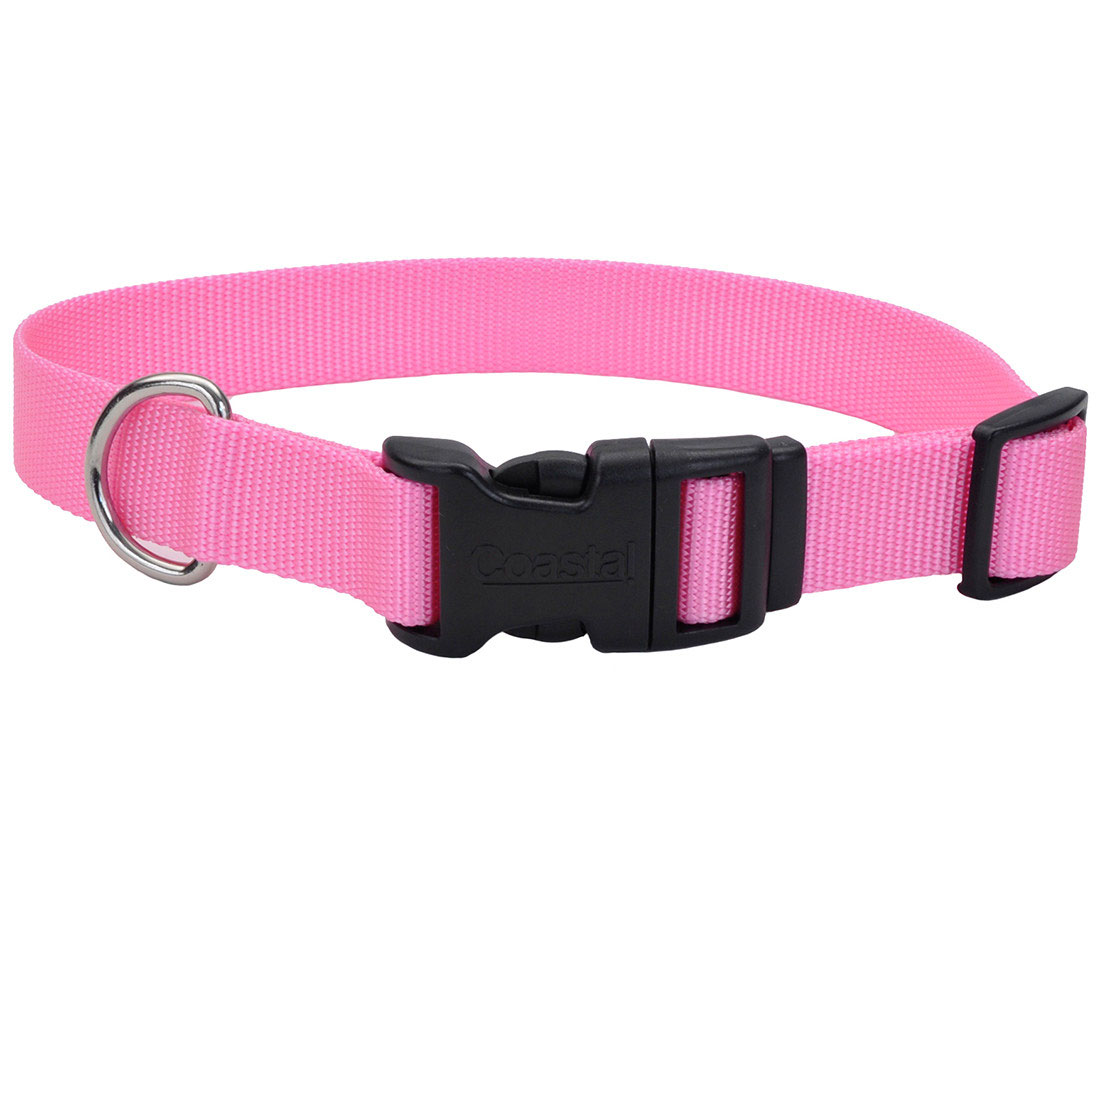 Coastal Adjustable Nylon Collar with Tuff Buckle for Dogs, Pink Bright, 3/8-in x 8-12-in